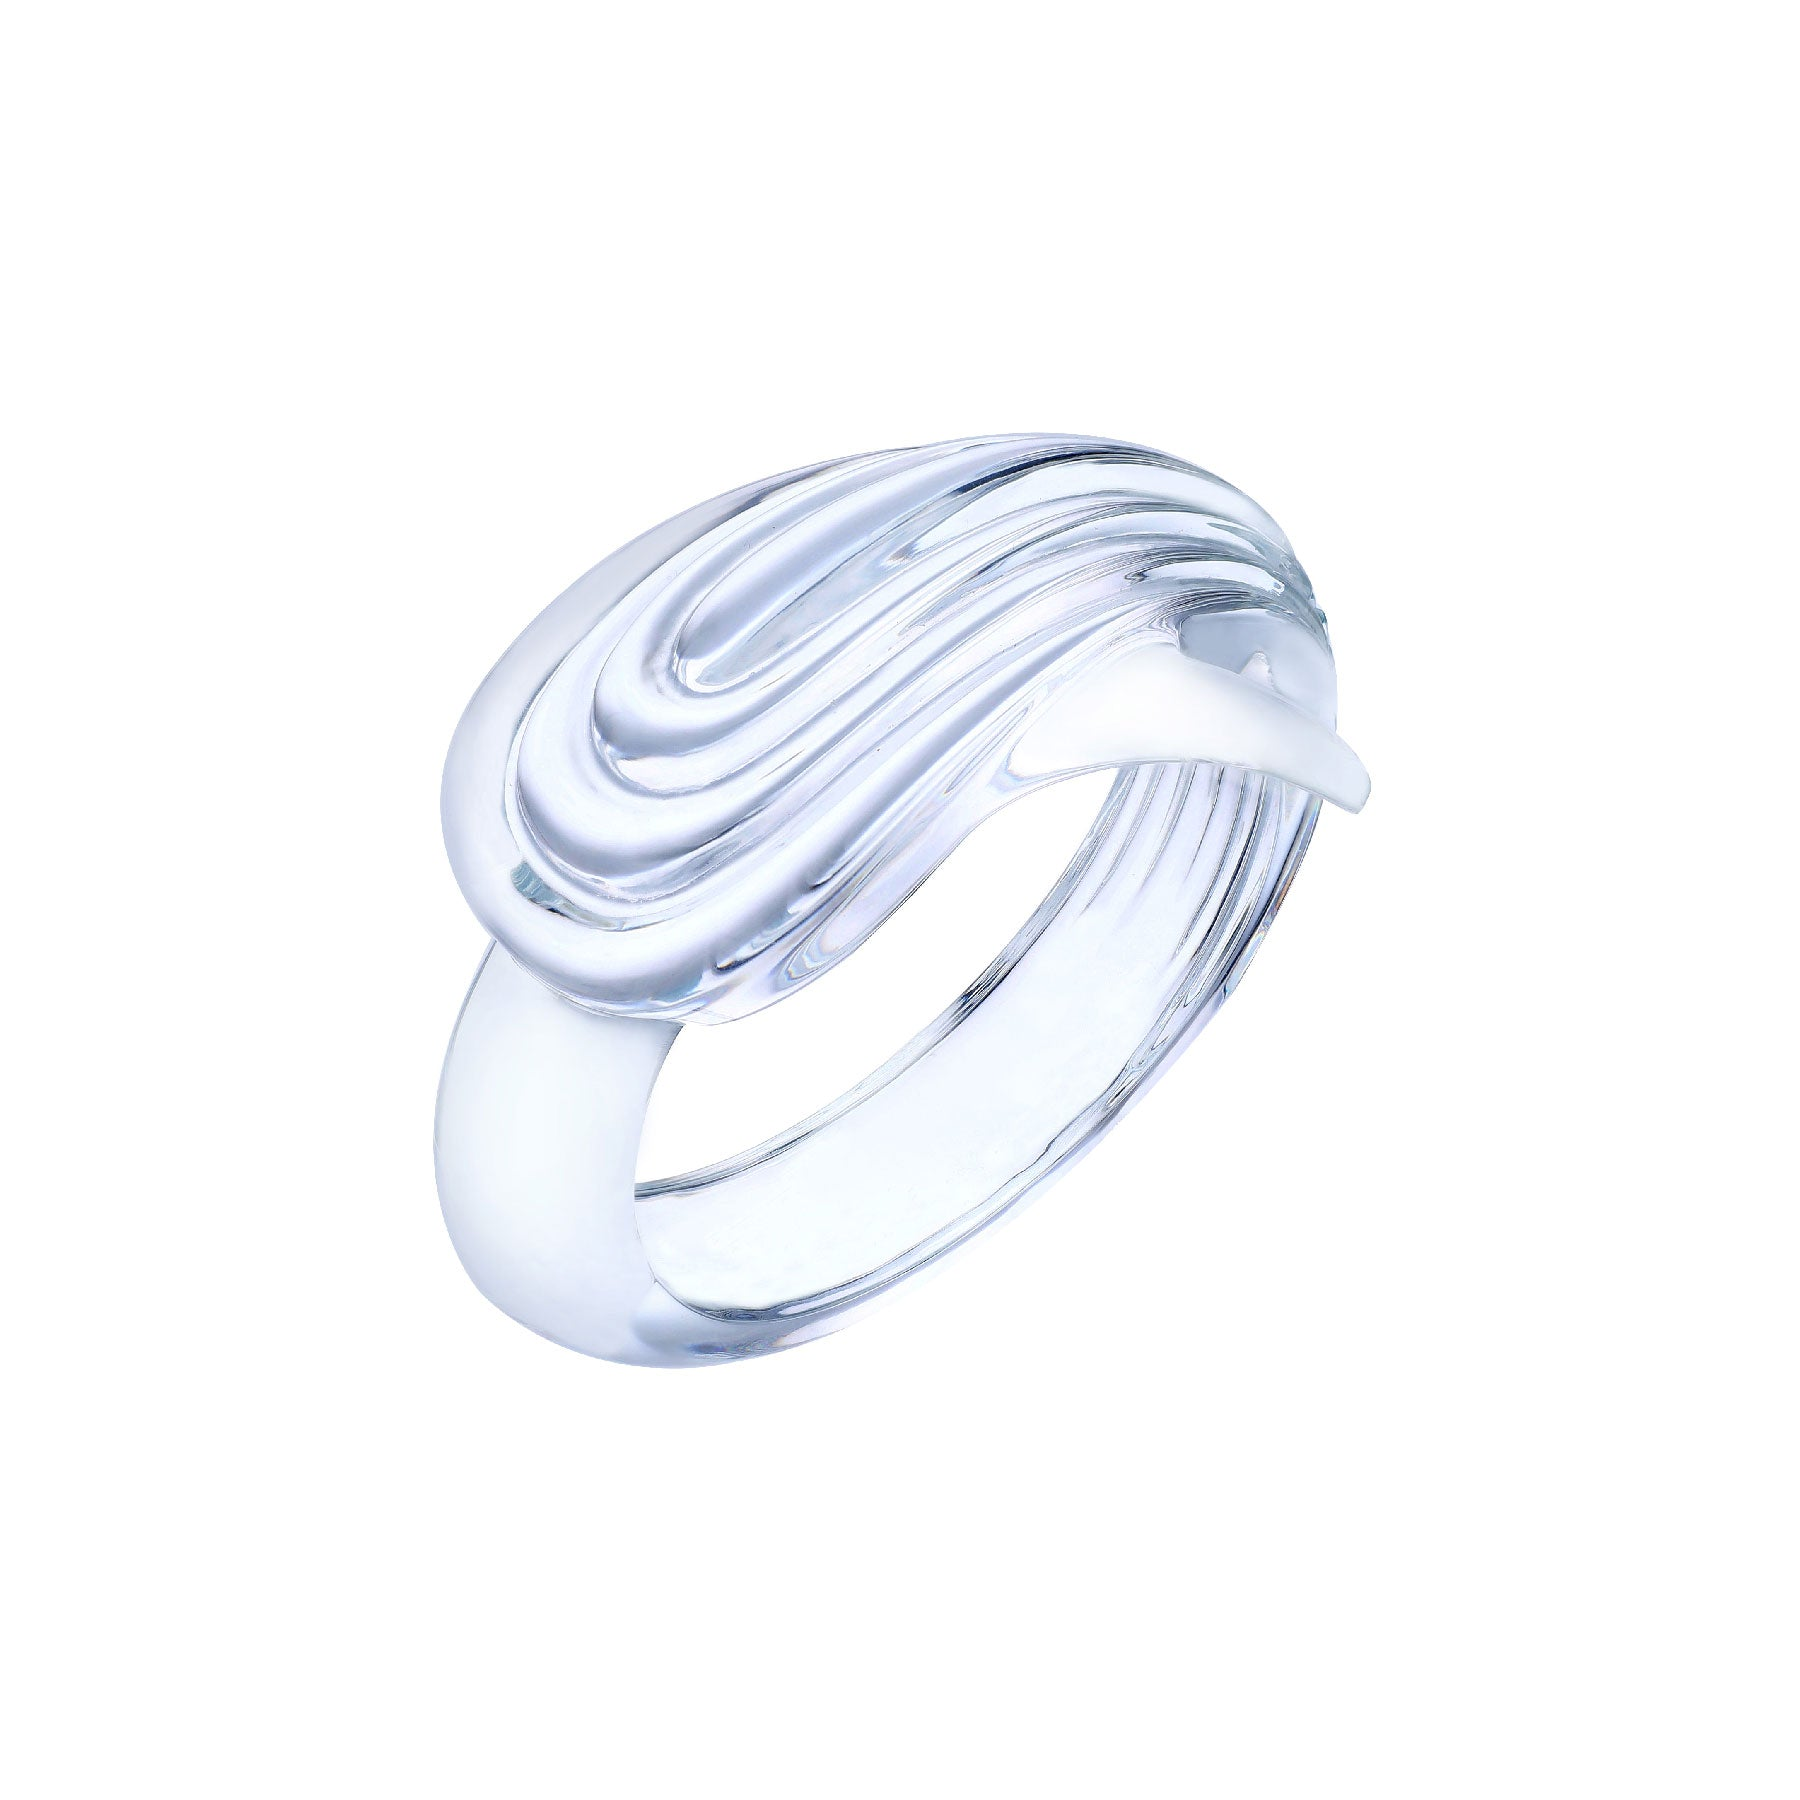 Sculpted Rippled Lucite Bracelet